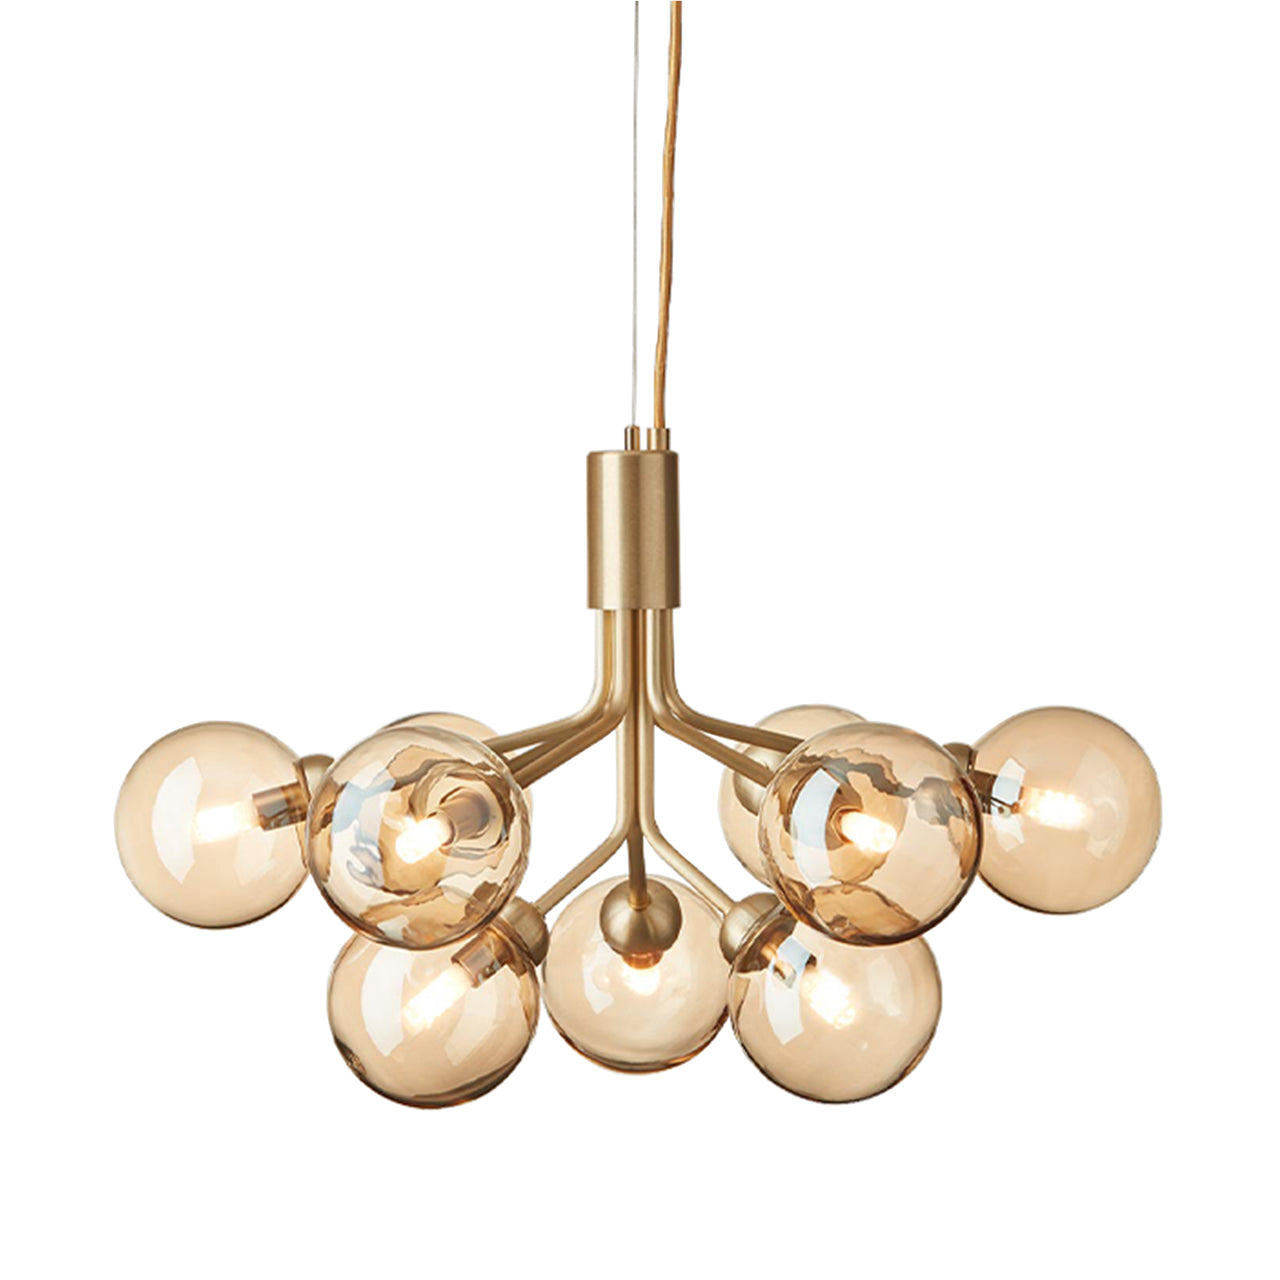 Apiales 9 Chandelier: Brushed Brass + Gold